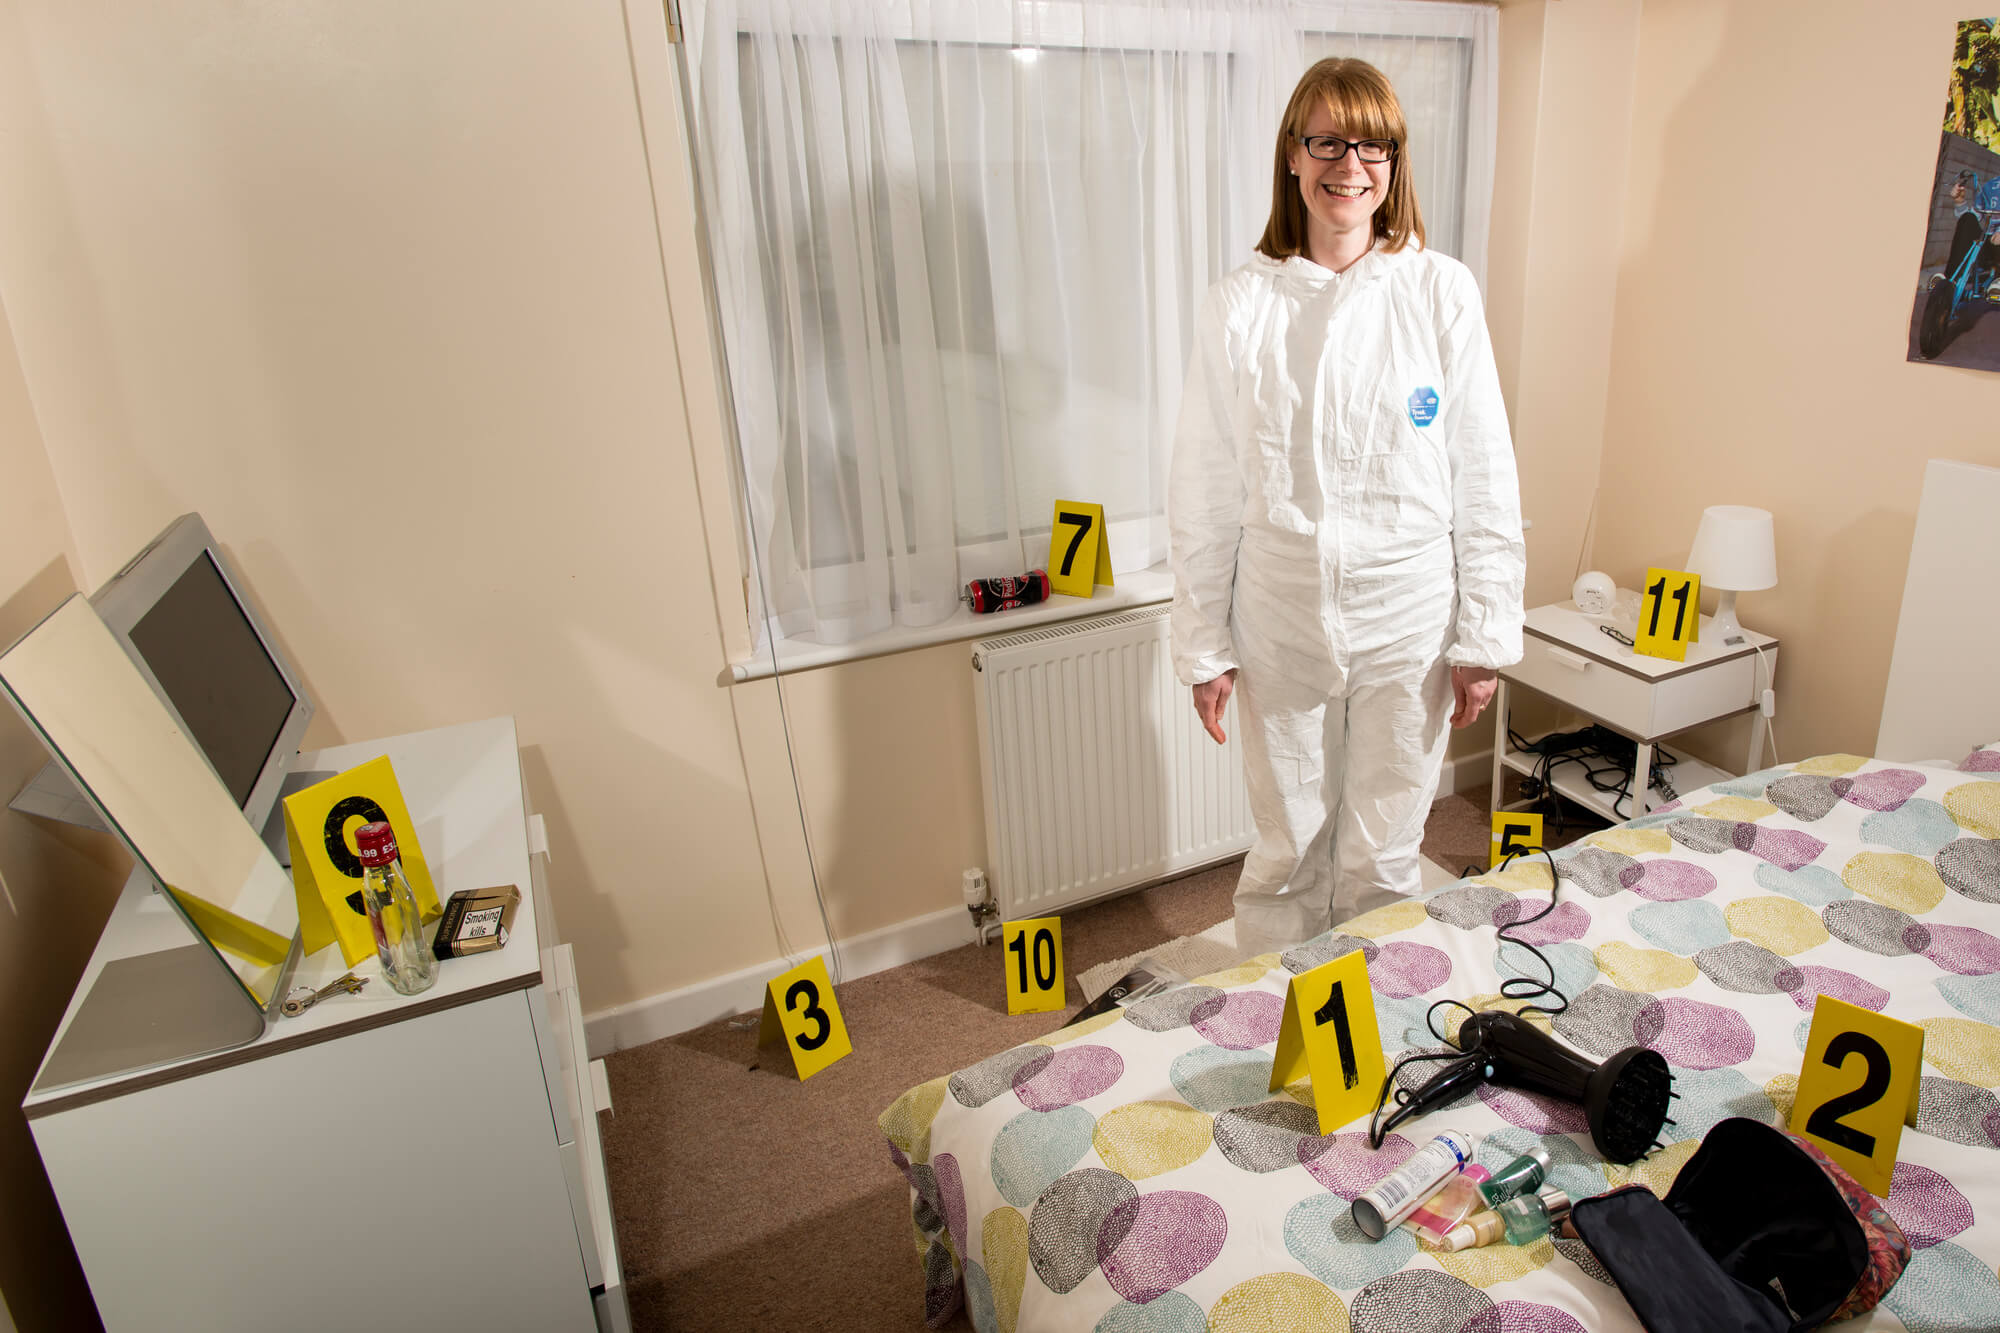 Rebekah Muldowney in a room at our Forensic Training Facility